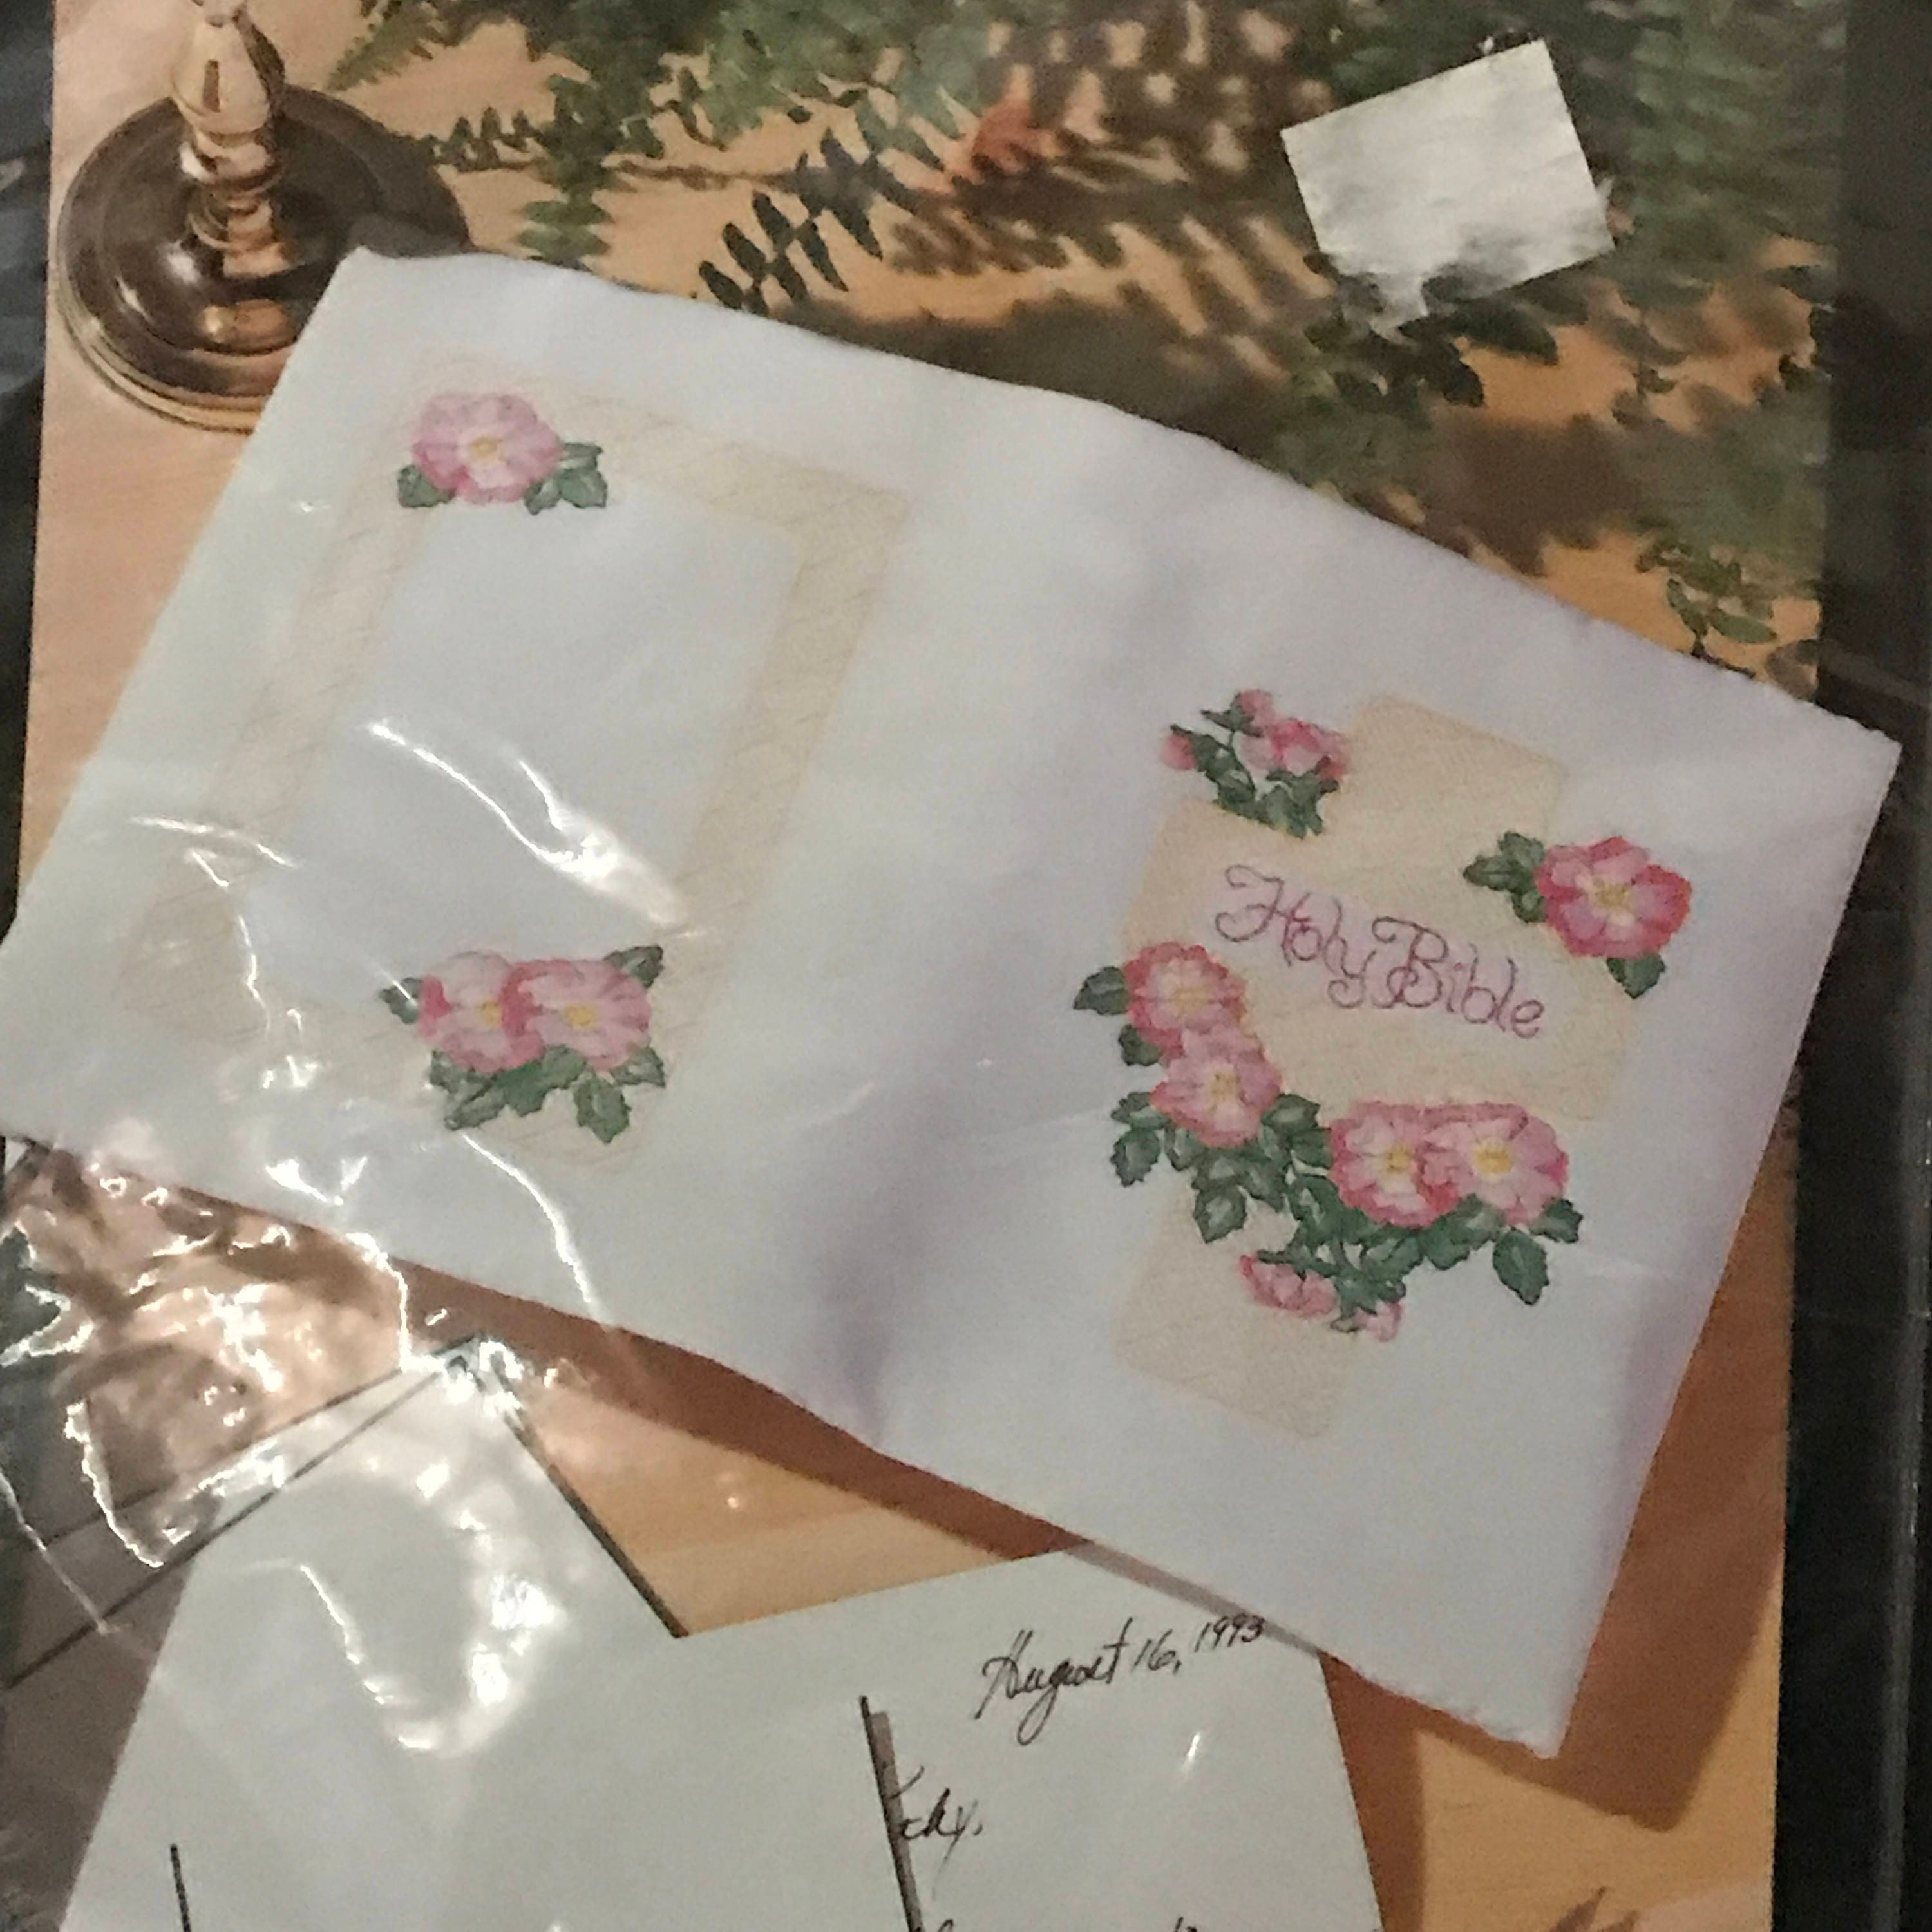 Embroidered Book Cover Diy : Bucilla wild roses bible cover embroidery kit cross